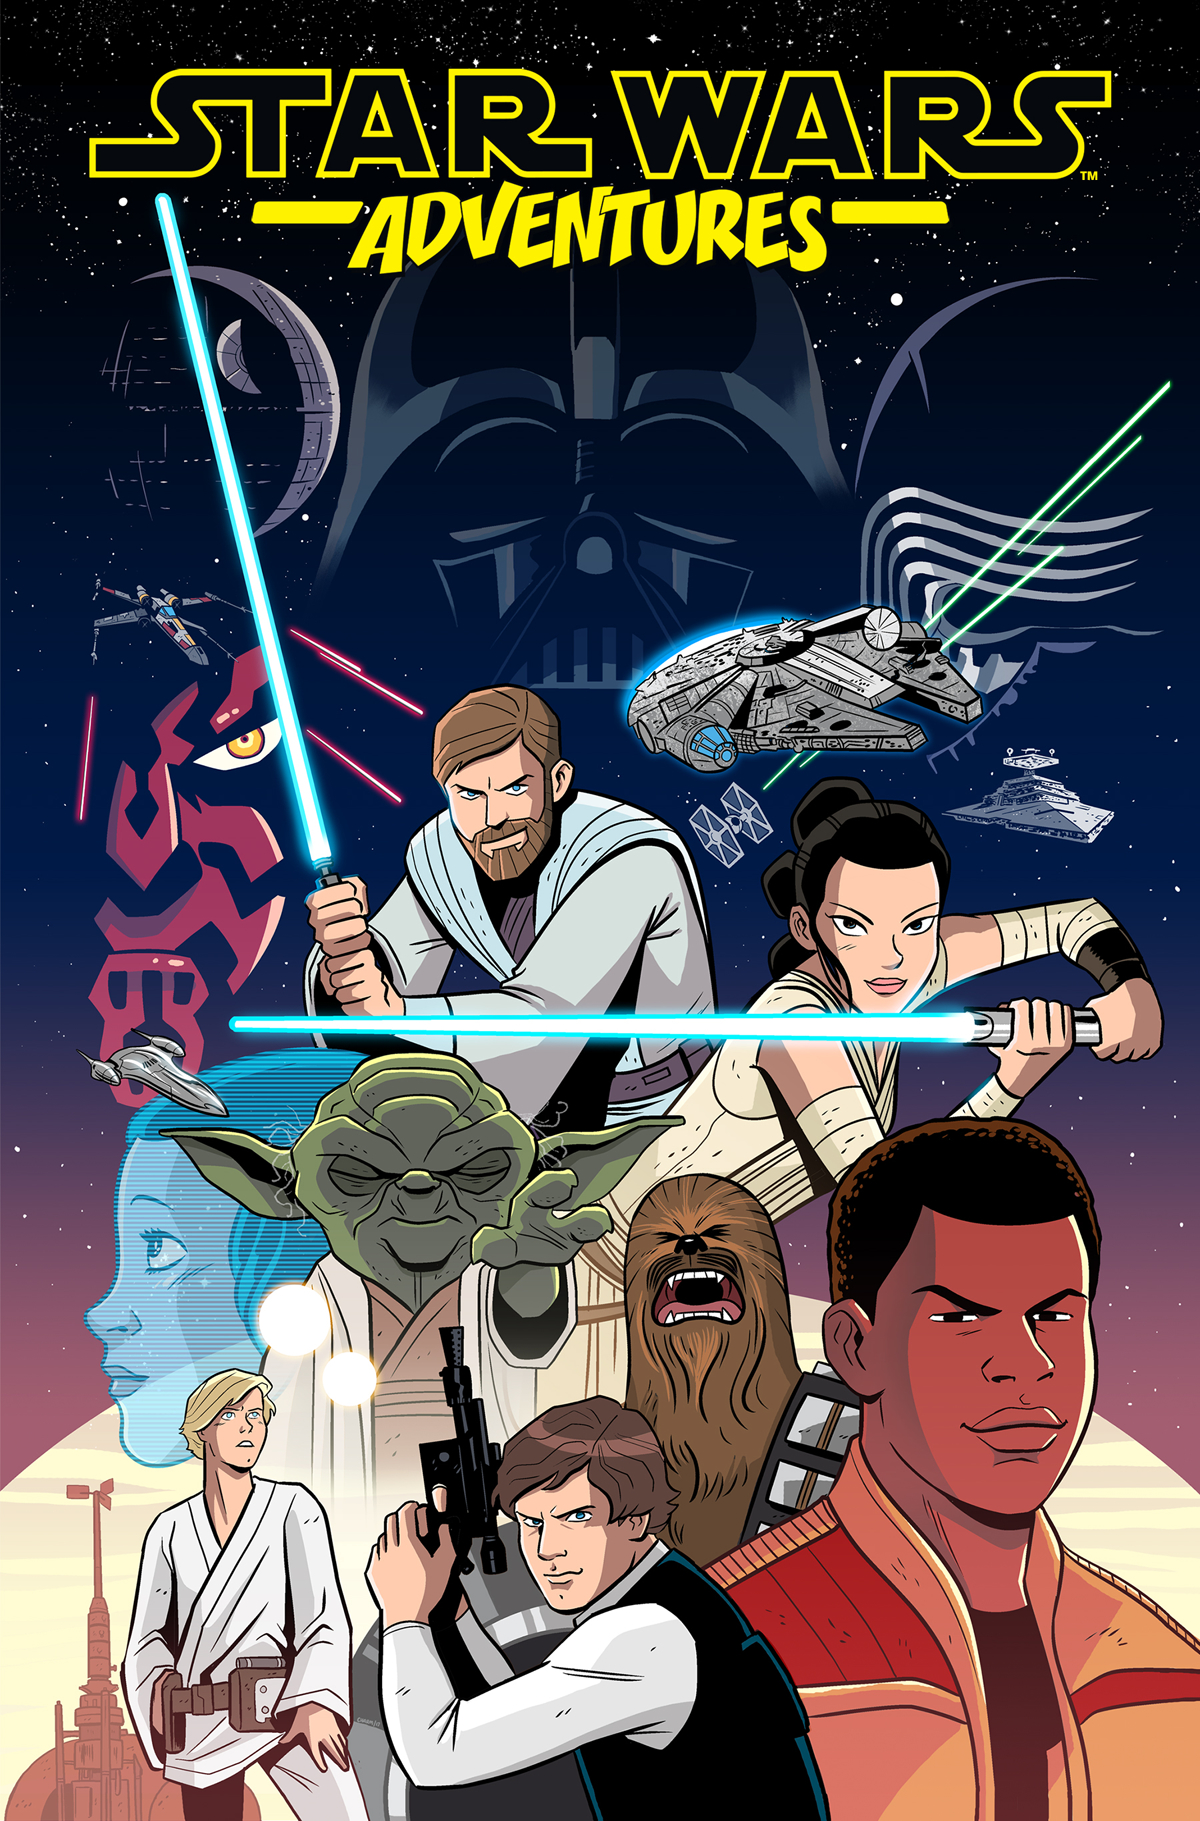 STAR WARS ADVENTURES TP VOL 01 (AUG170383)